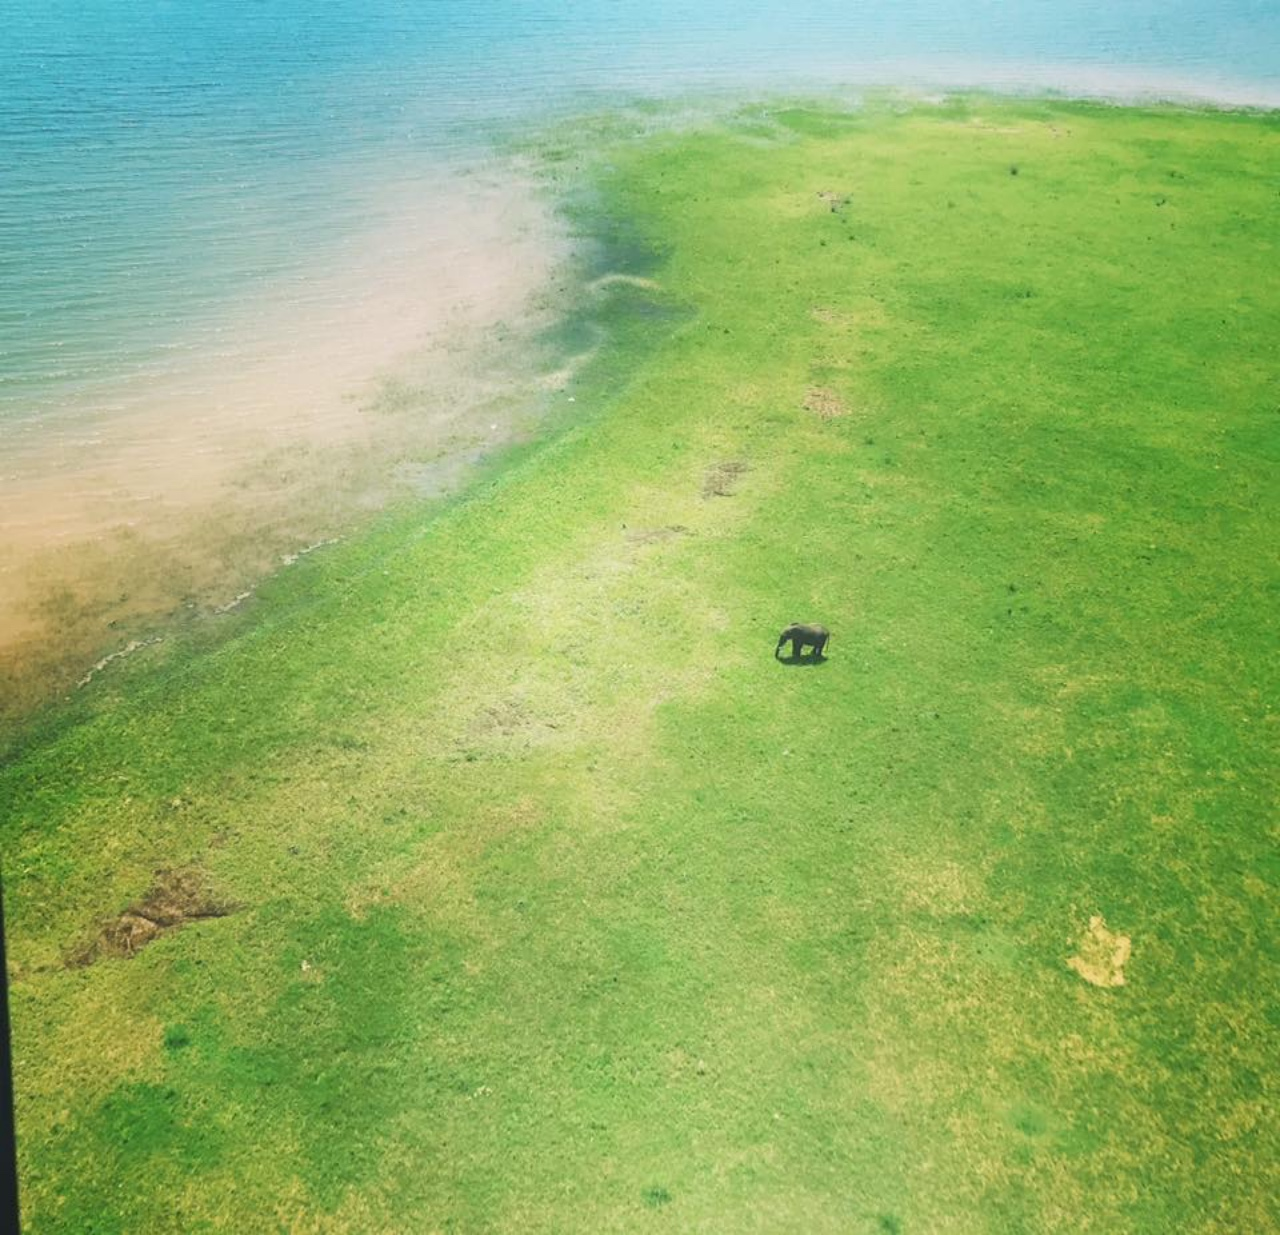 Elephant spotting on the edge of Lake Kariba from the air